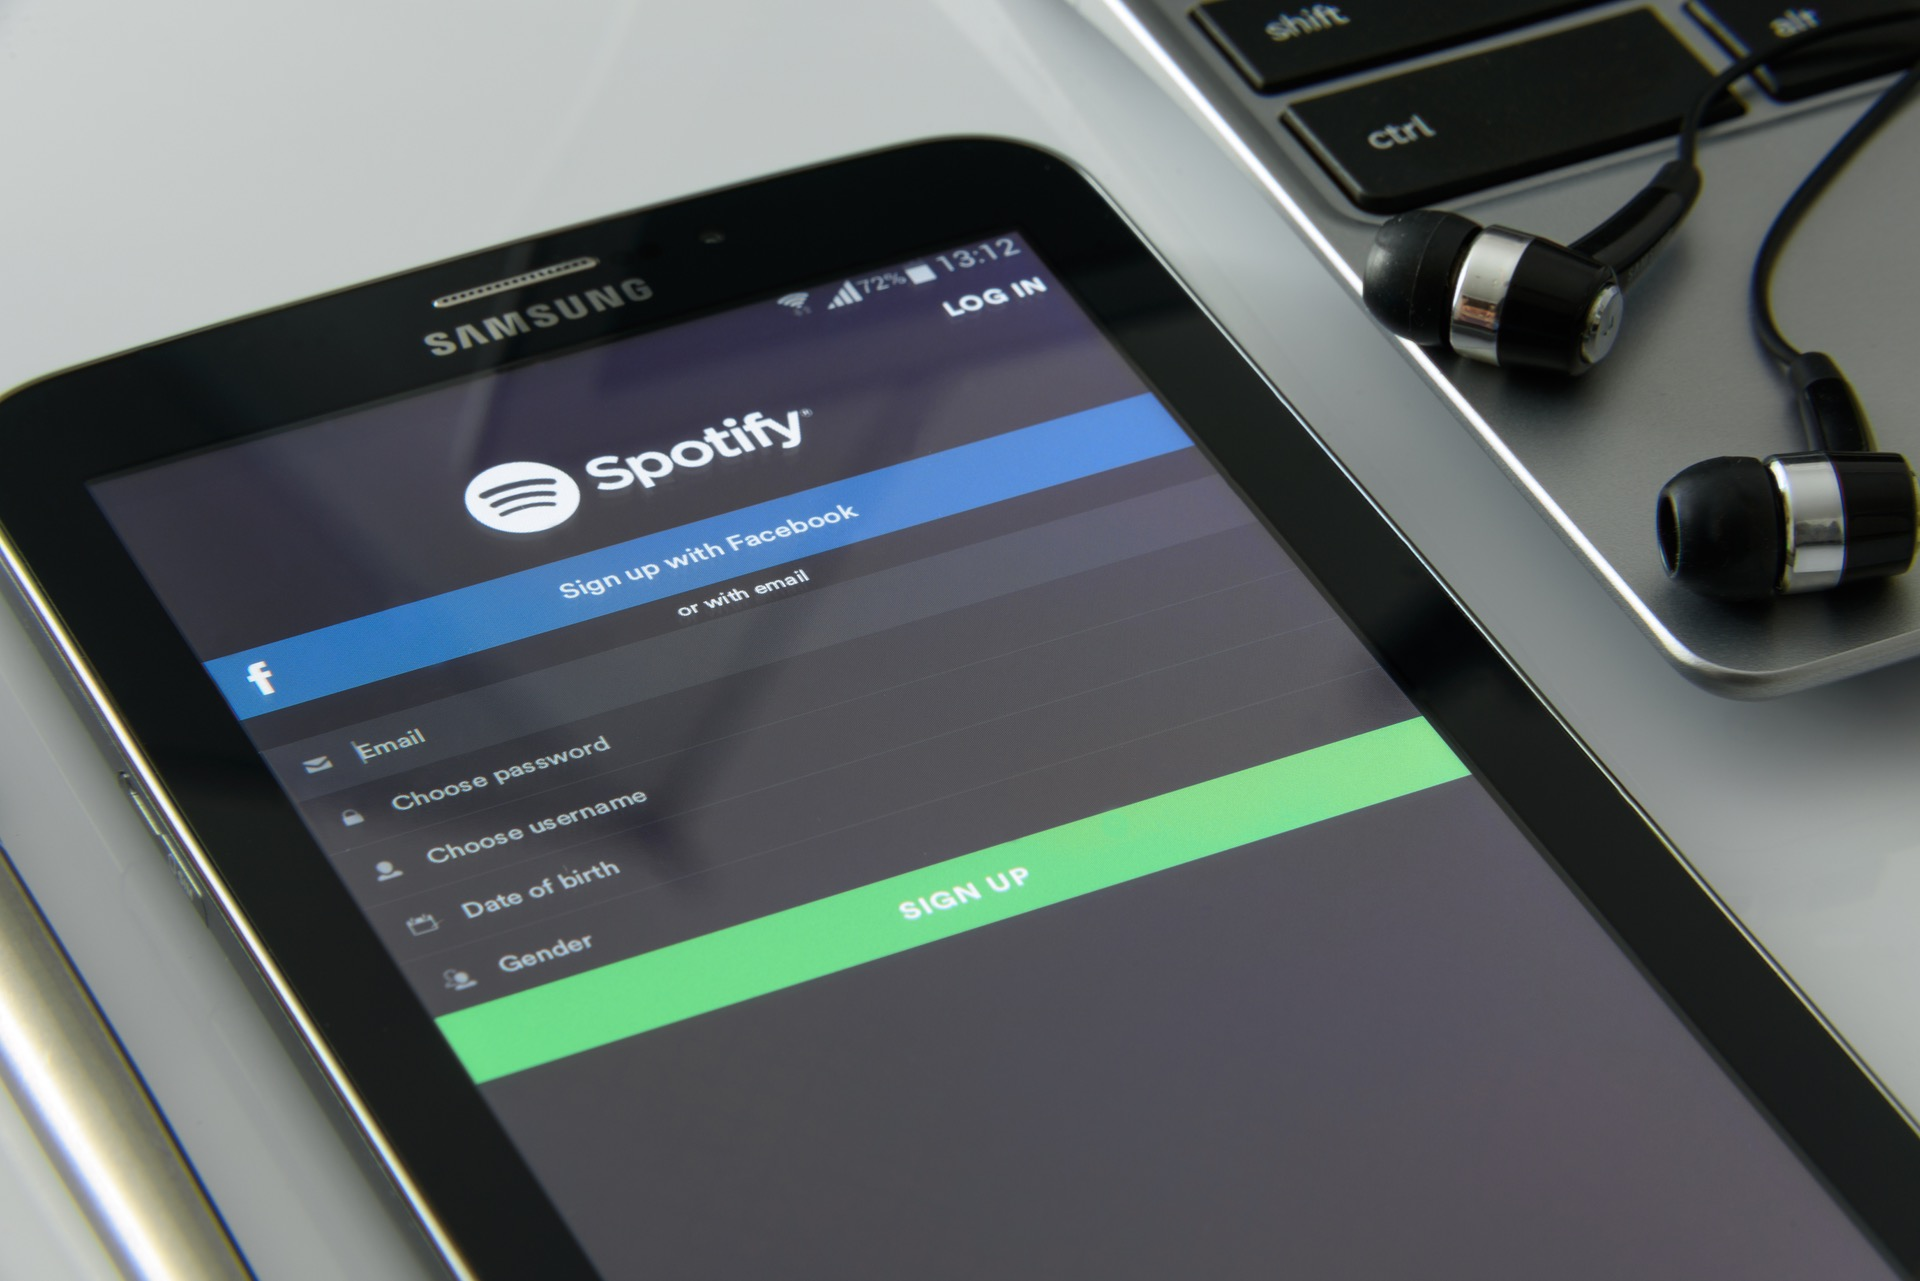 Spotify application on a cellphone